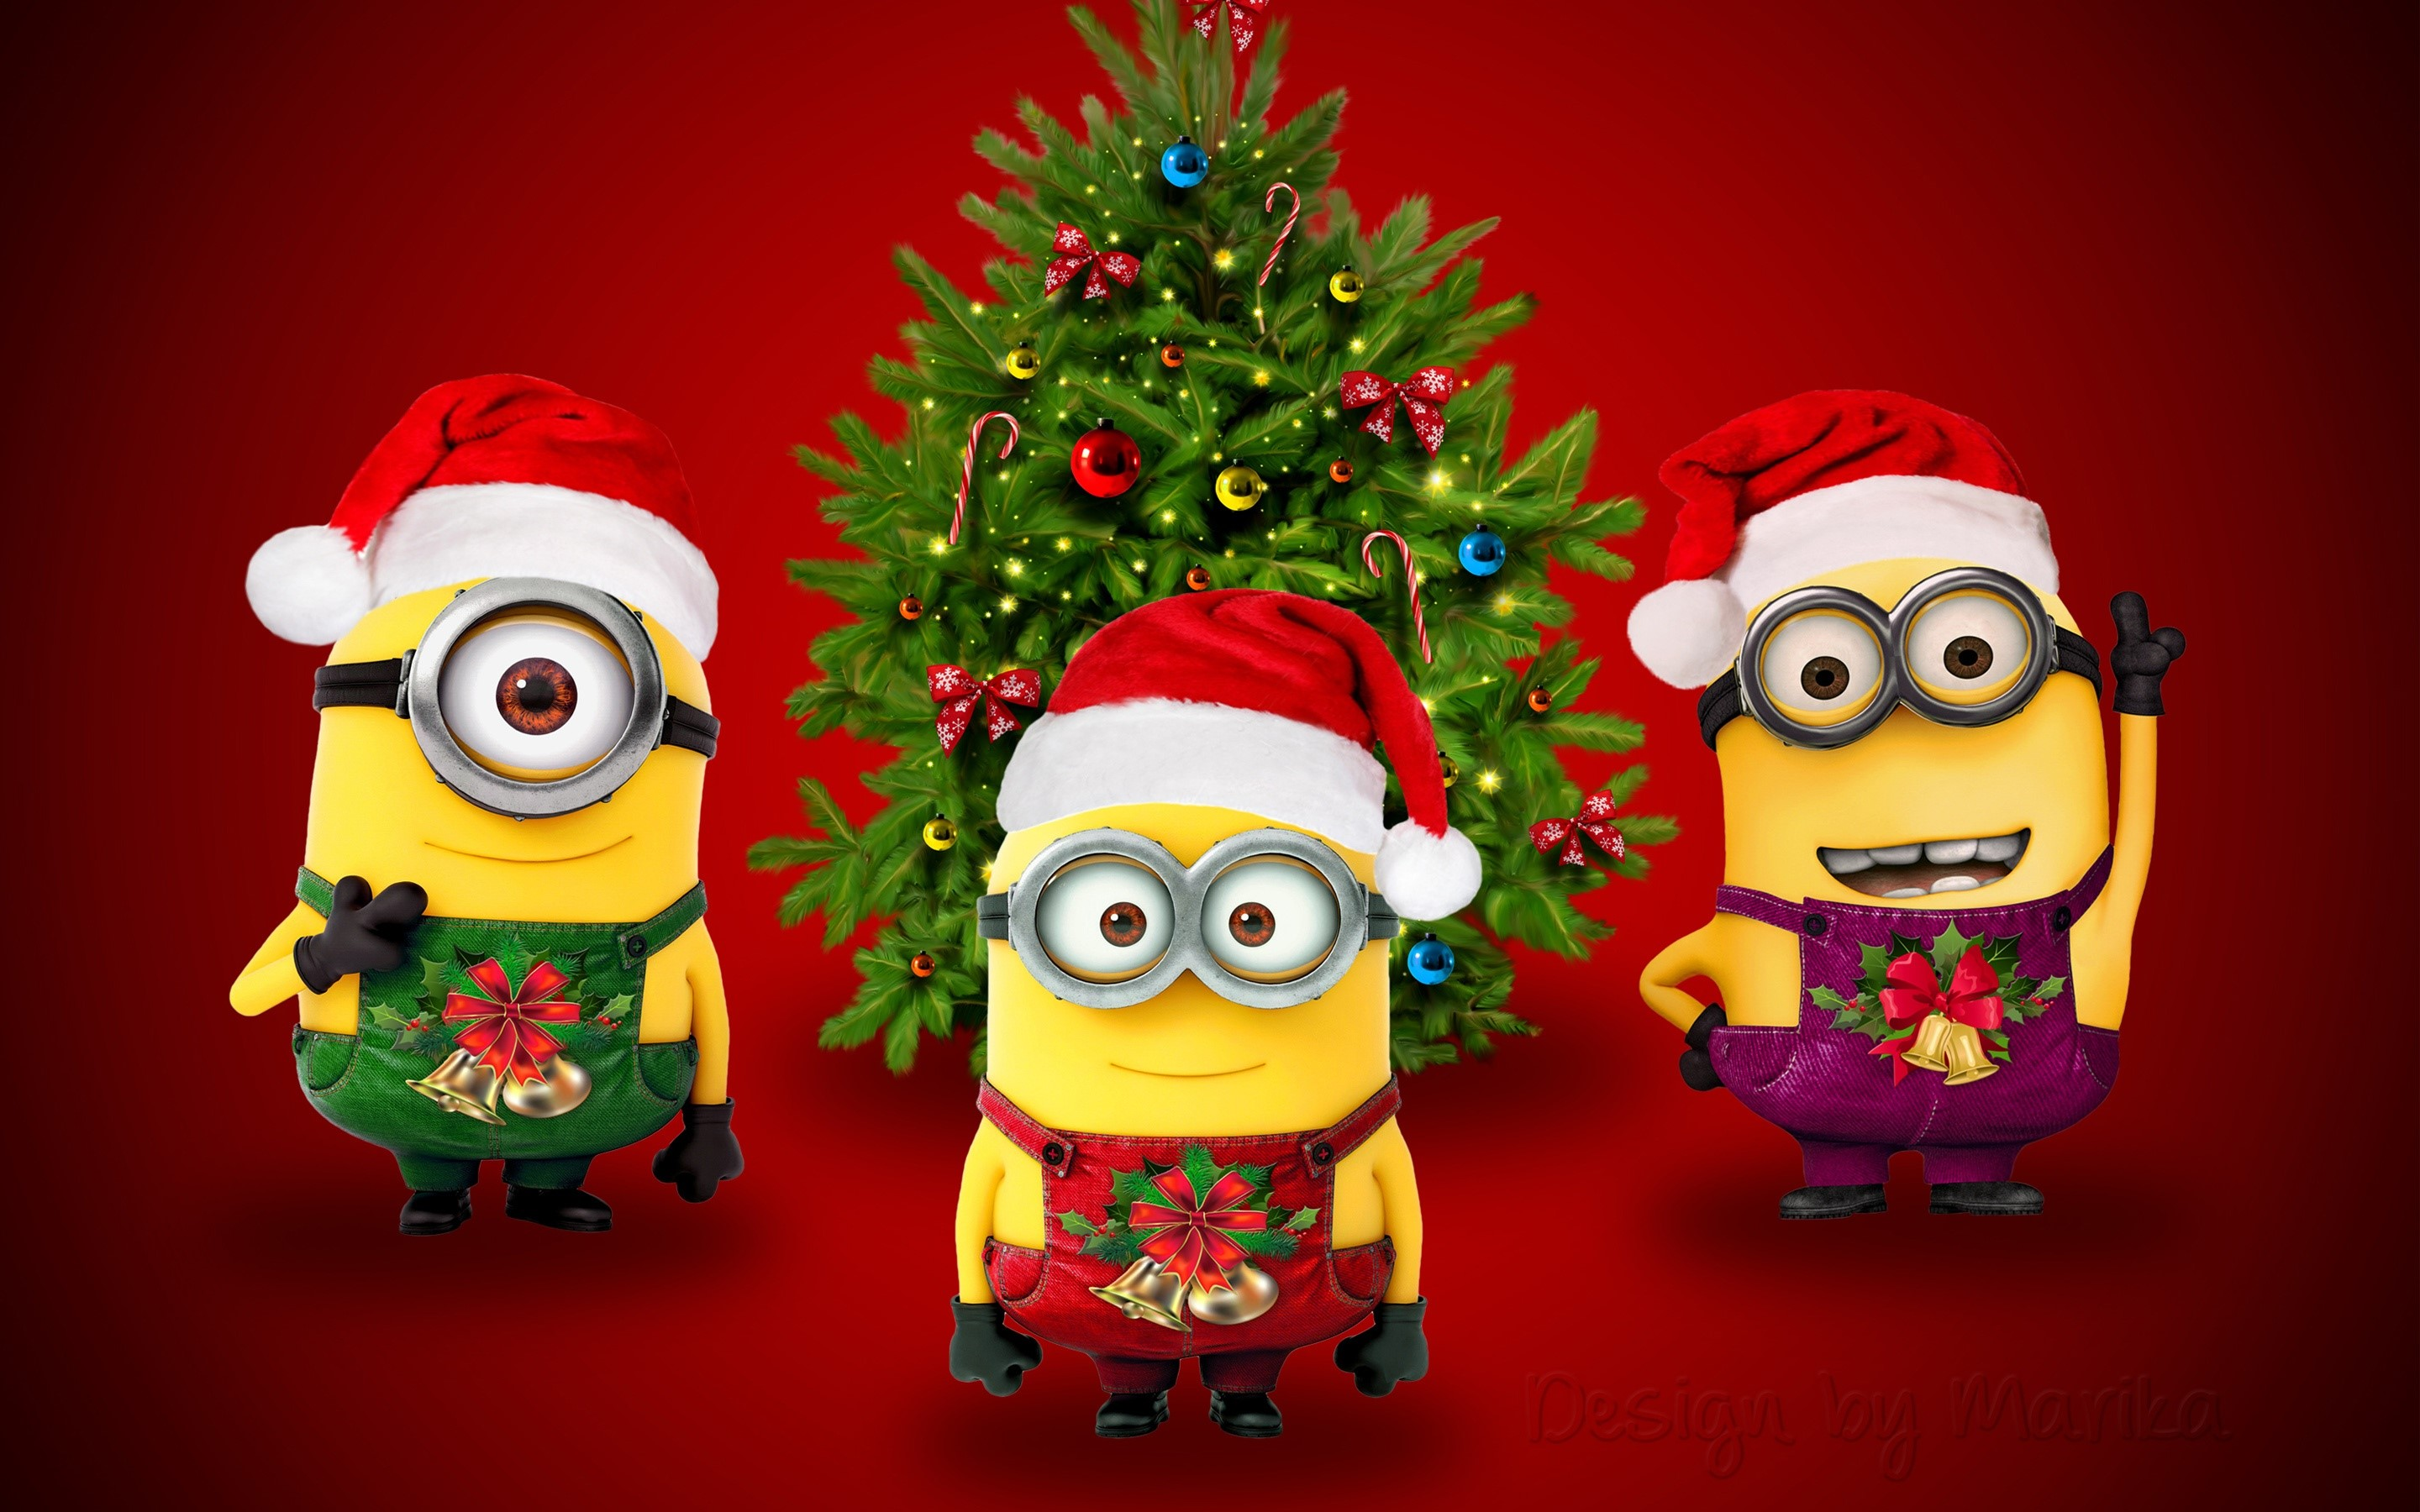 Wallpaper Minions dressed as Santa